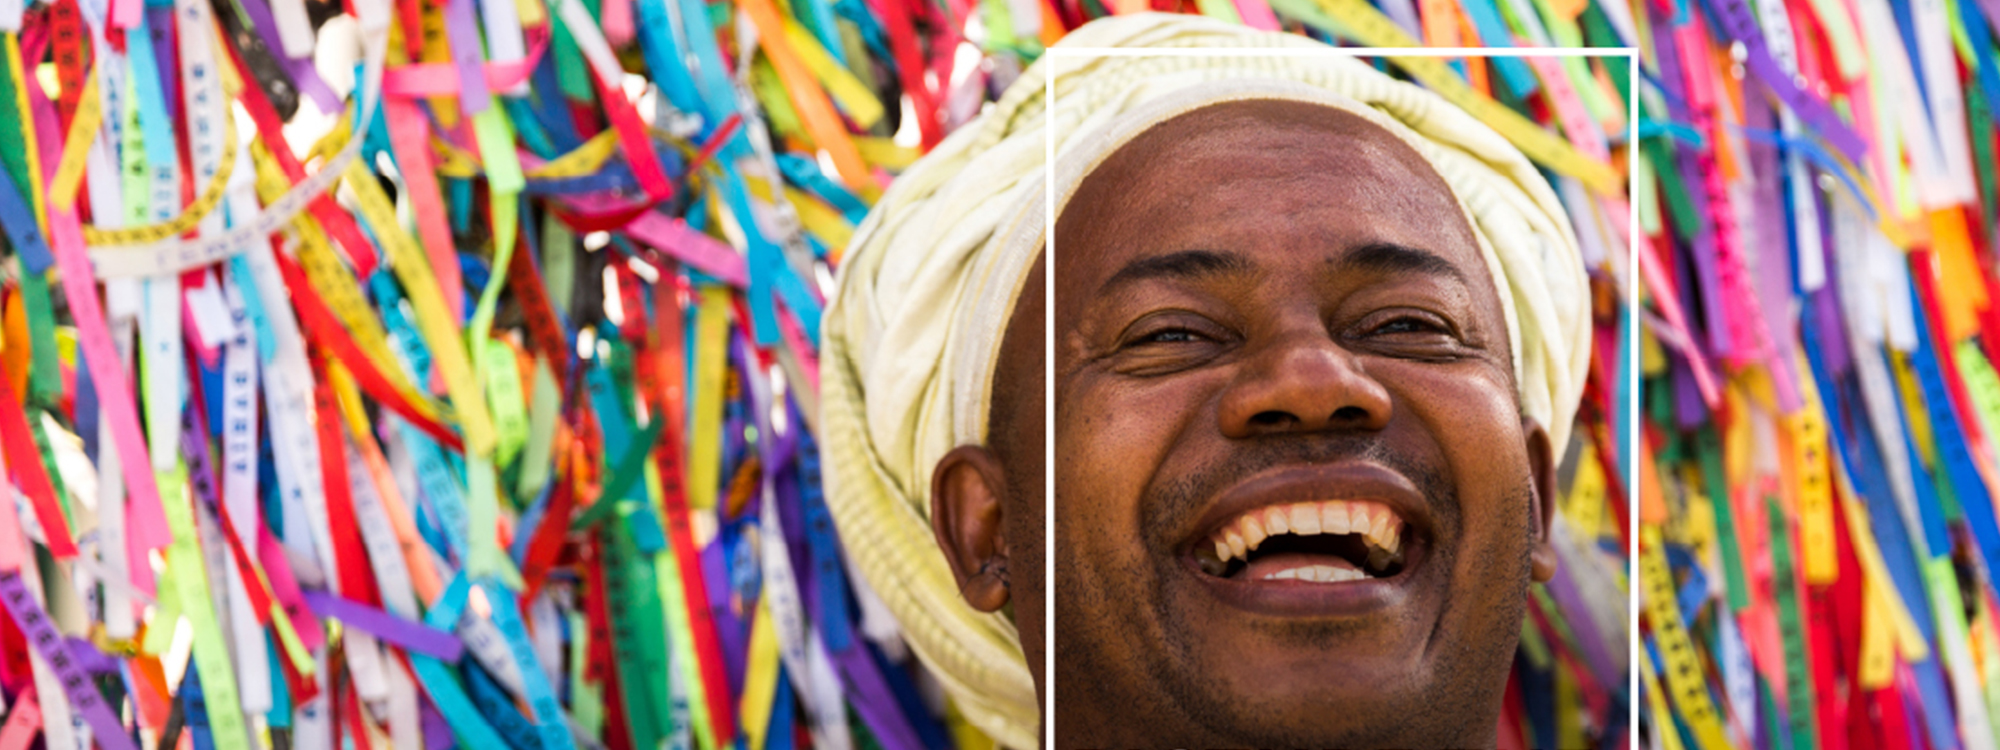 Man smiling with colourful background